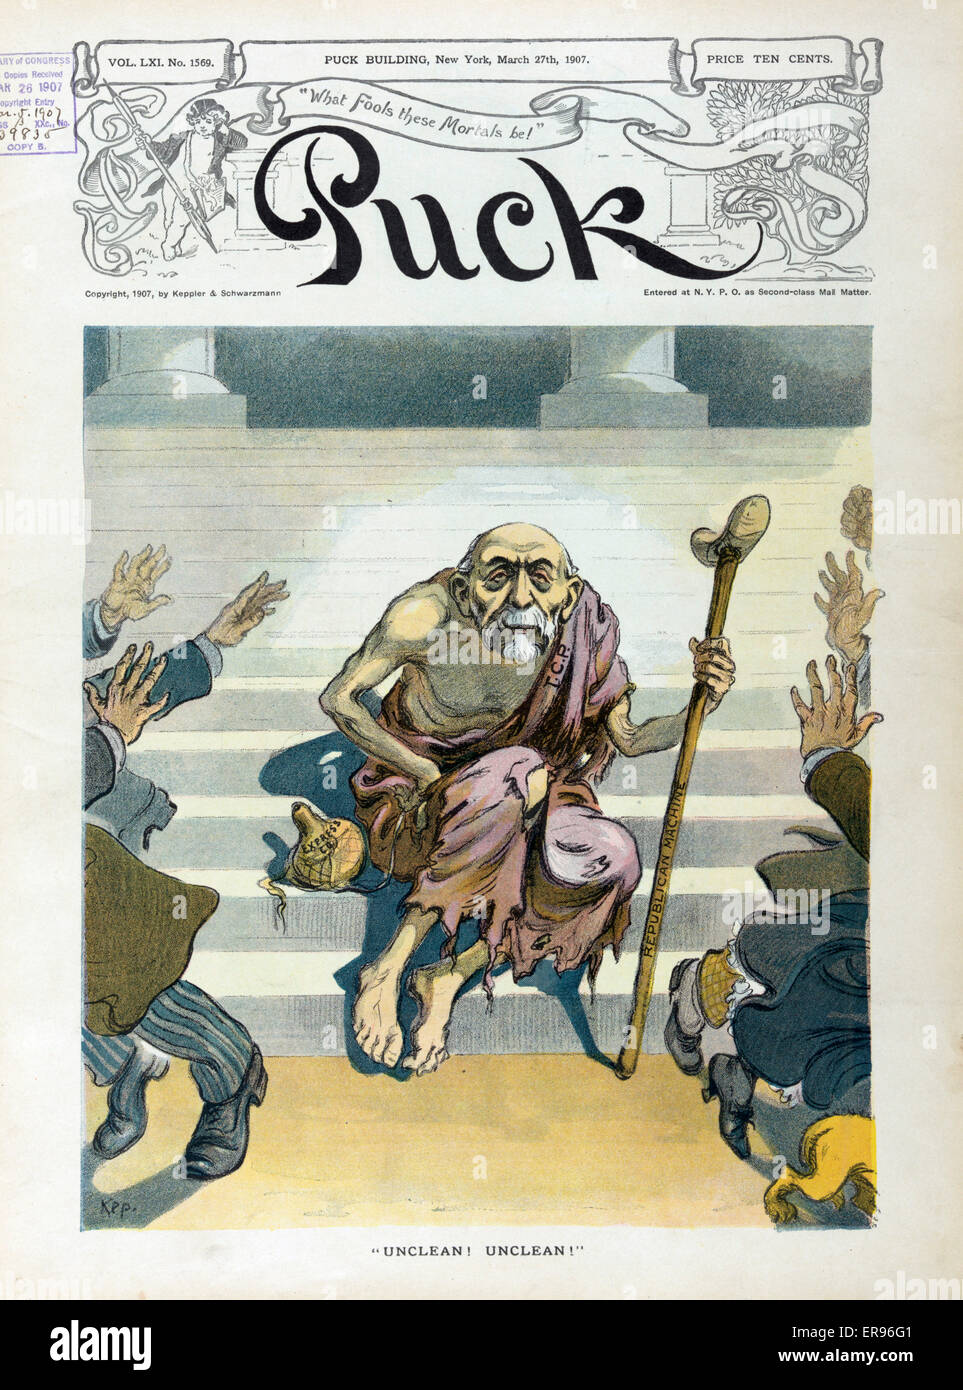 Unclean! Unclean!. Illustration shows an old man labeled TCP. (Thomas Collier Platt) wearing ragged clothing and - Stock Image